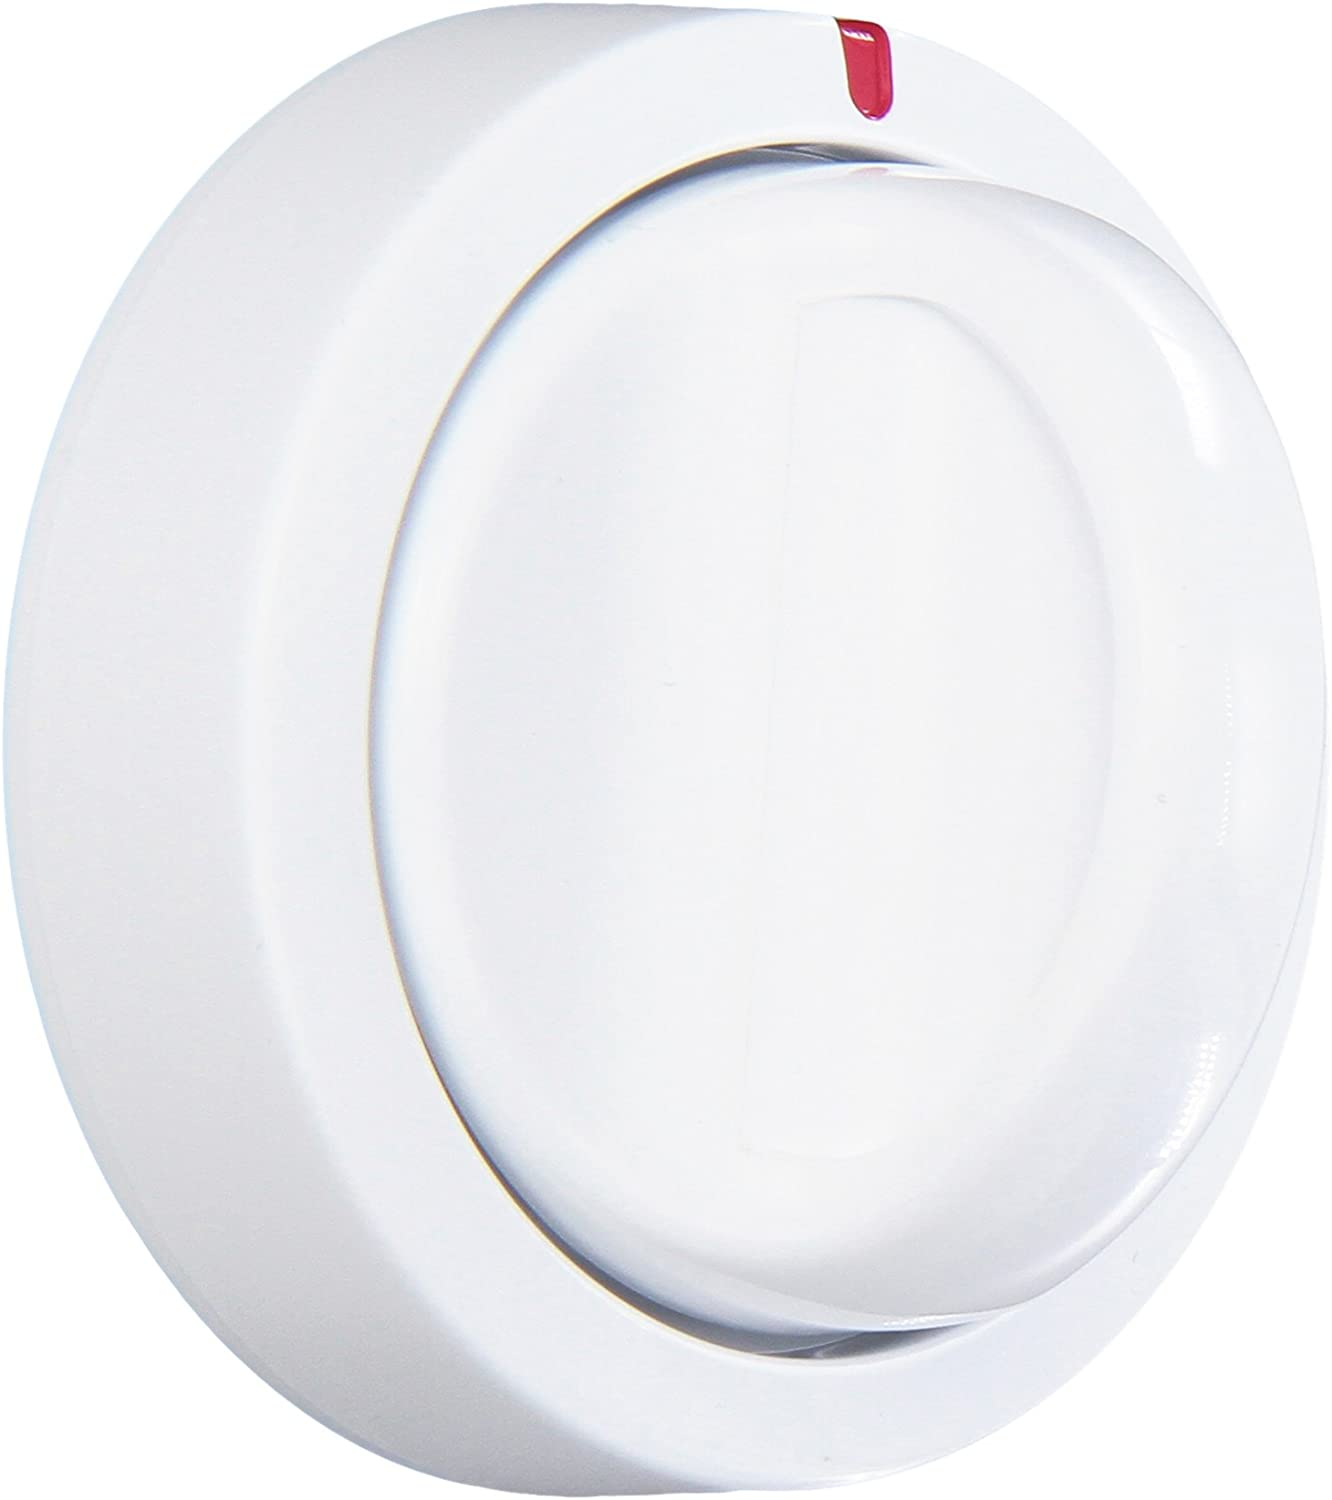 Genuine 134011703 Frigidaire Dryer Timer Knob White